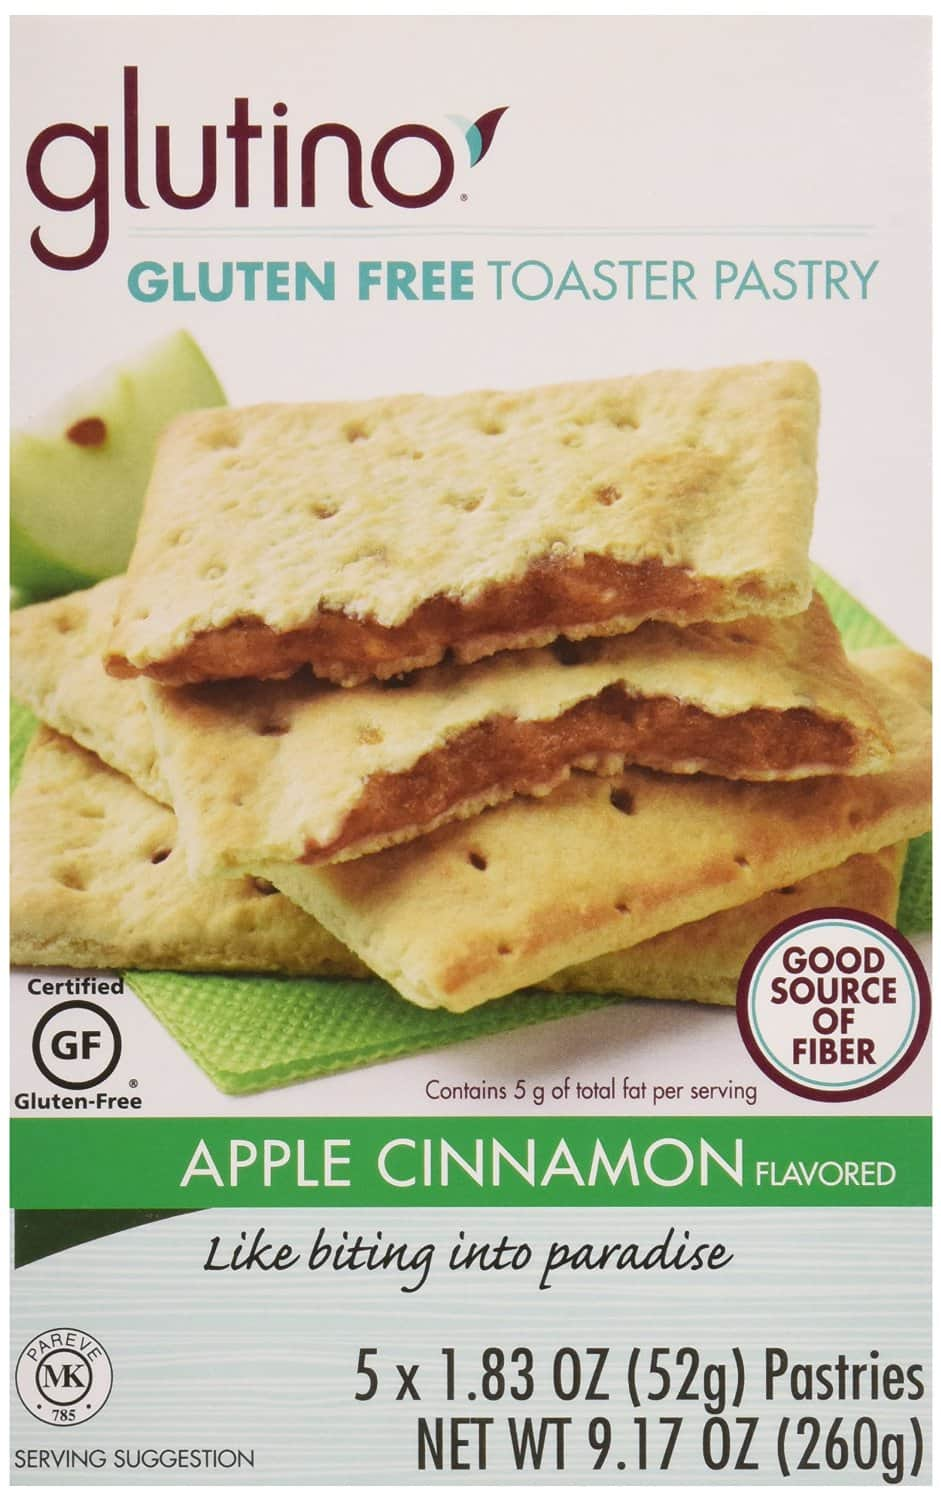 5-Ct Glutino Gluten Free Toaster Pastry (Strawberry or Apple Cinnamon)  $2.75 + Free Shipping